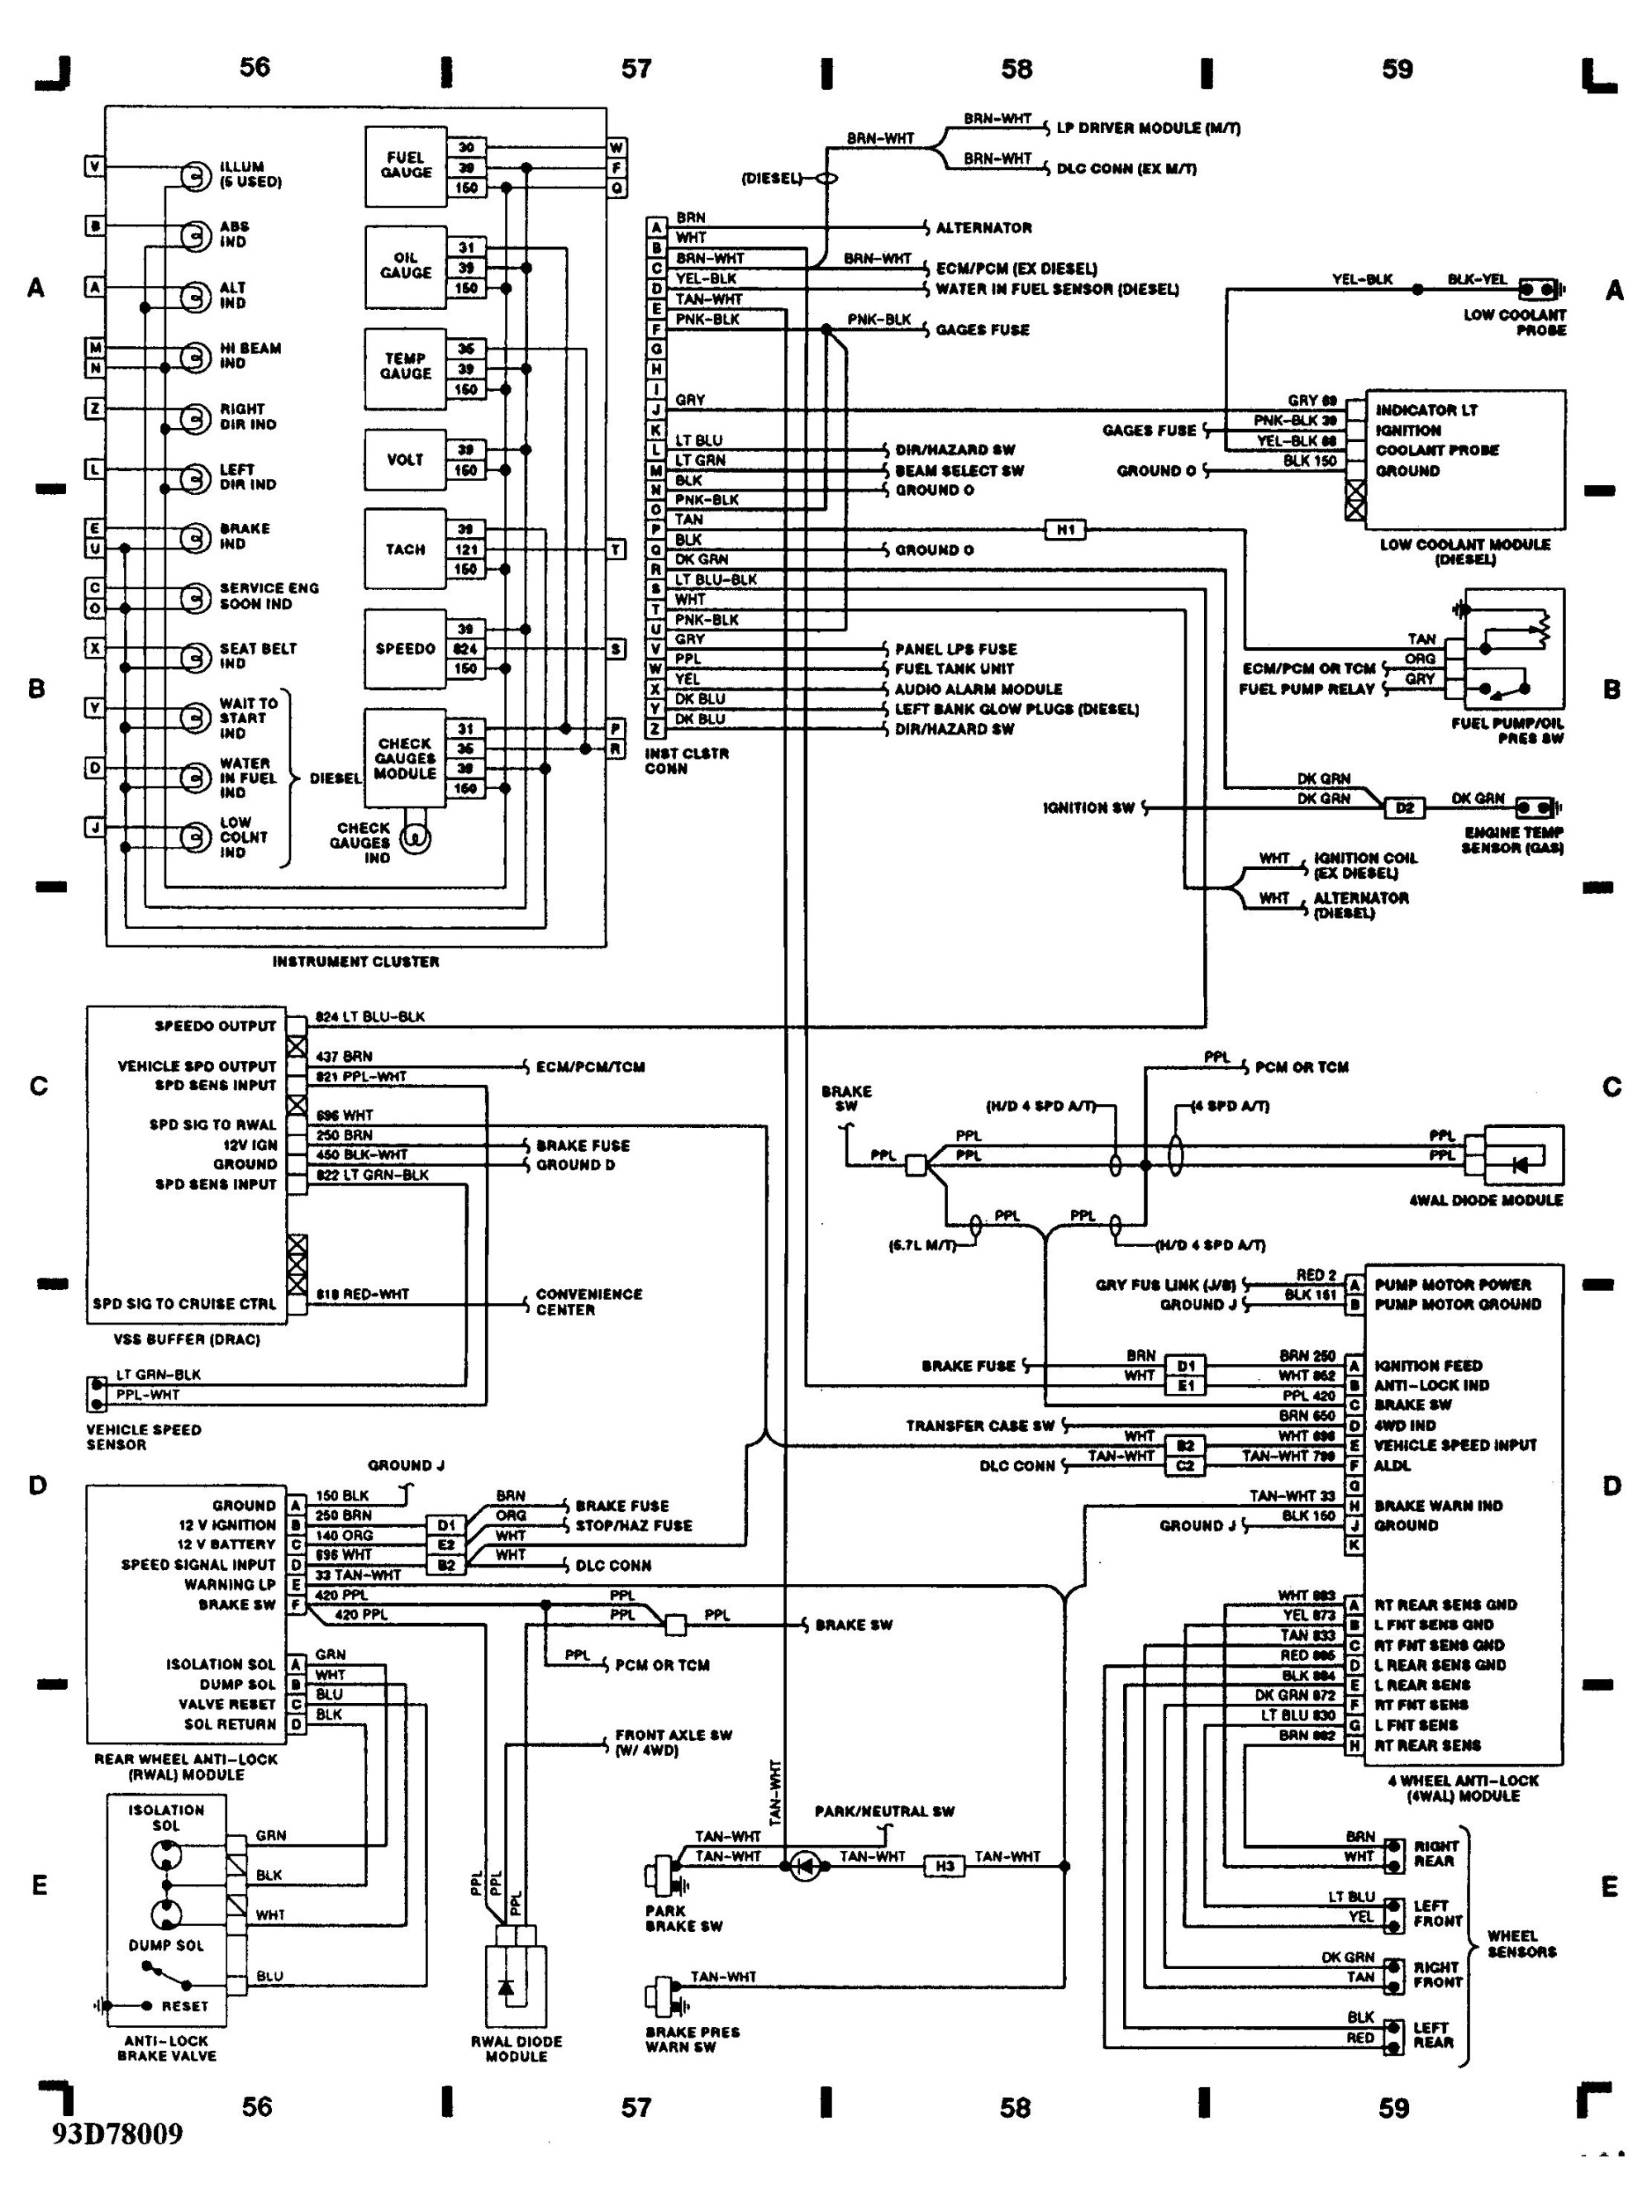 hight resolution of 1995 chevy lumina wiring diagram wiring library rh 78 skriptoase de 96 lumina radio wiring diagram 1991 chevy lumina alternator wiring diagram